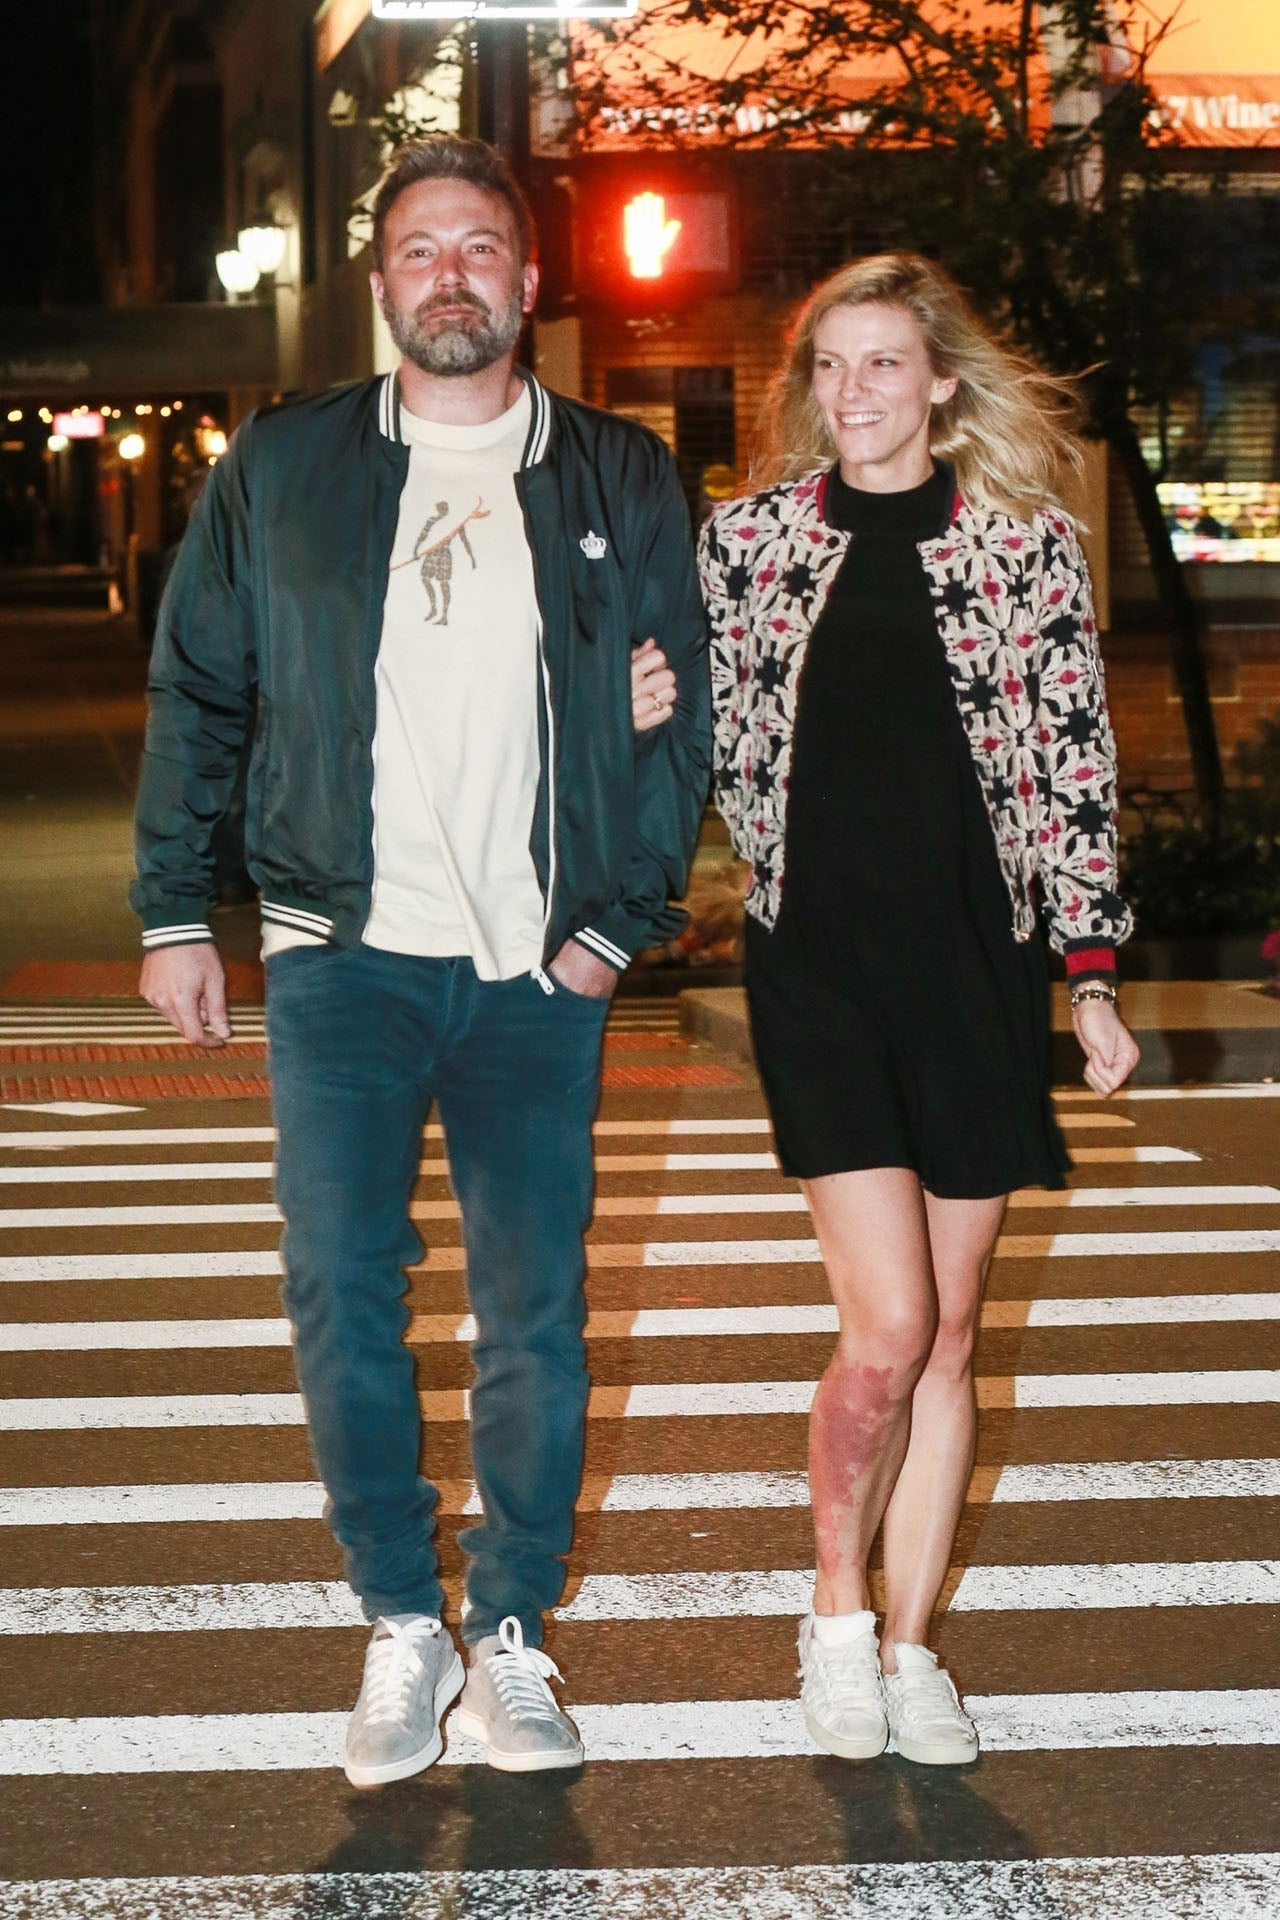 Ben Affleck and Lindsay Shookus go to the movies